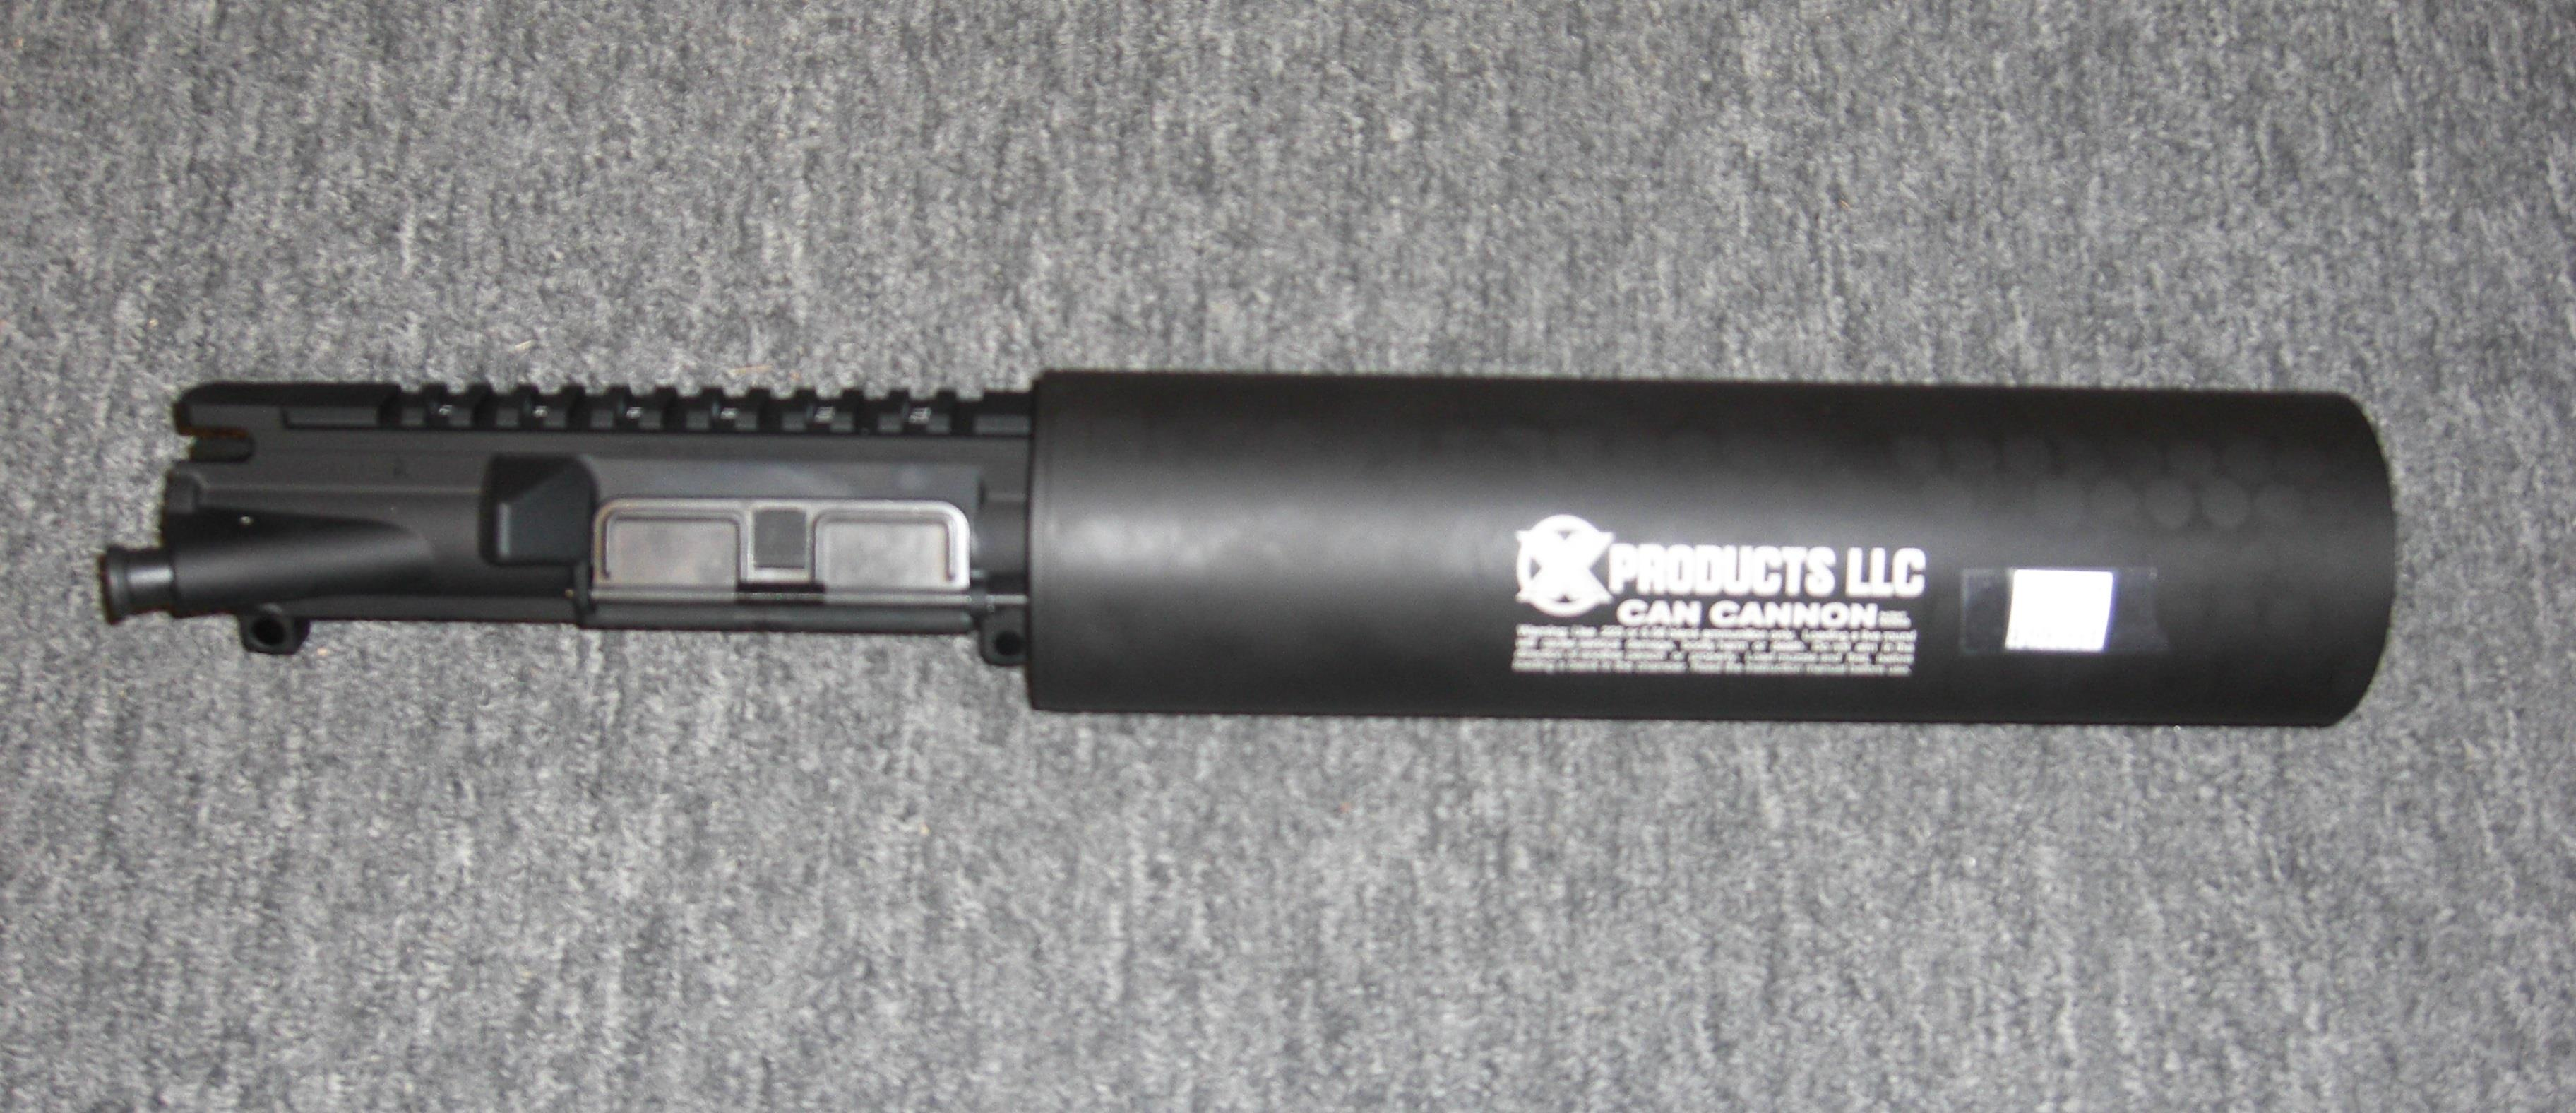 X Products LLC CAN CANNON (Soda can launcher upper)  Non-Guns > Barrels